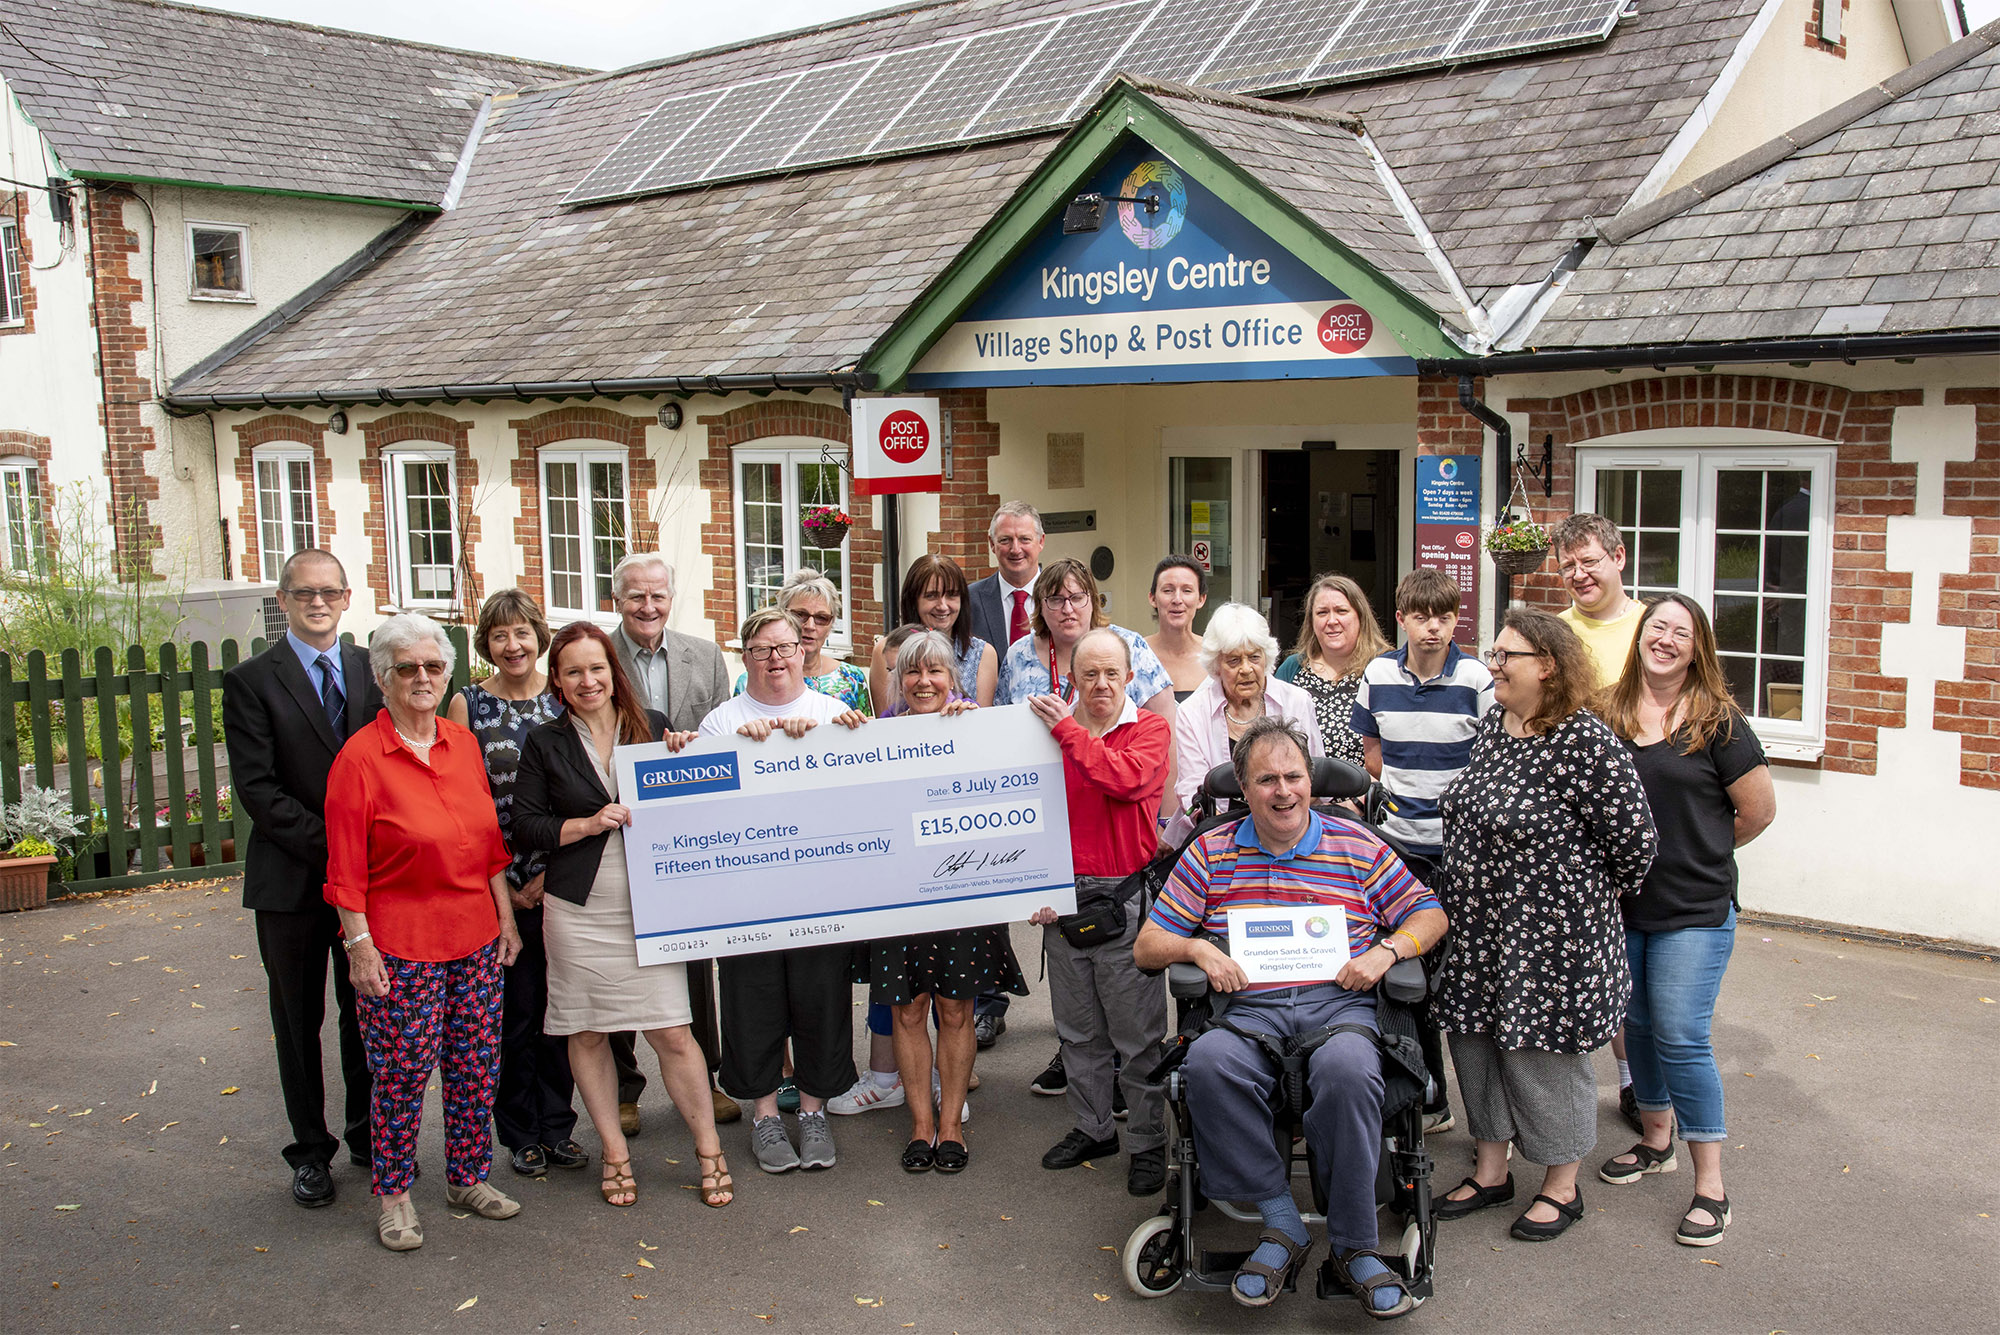 Celebrations as Kingsley Organisation receives a £15,000 grant from Grundon Sand & Gravel